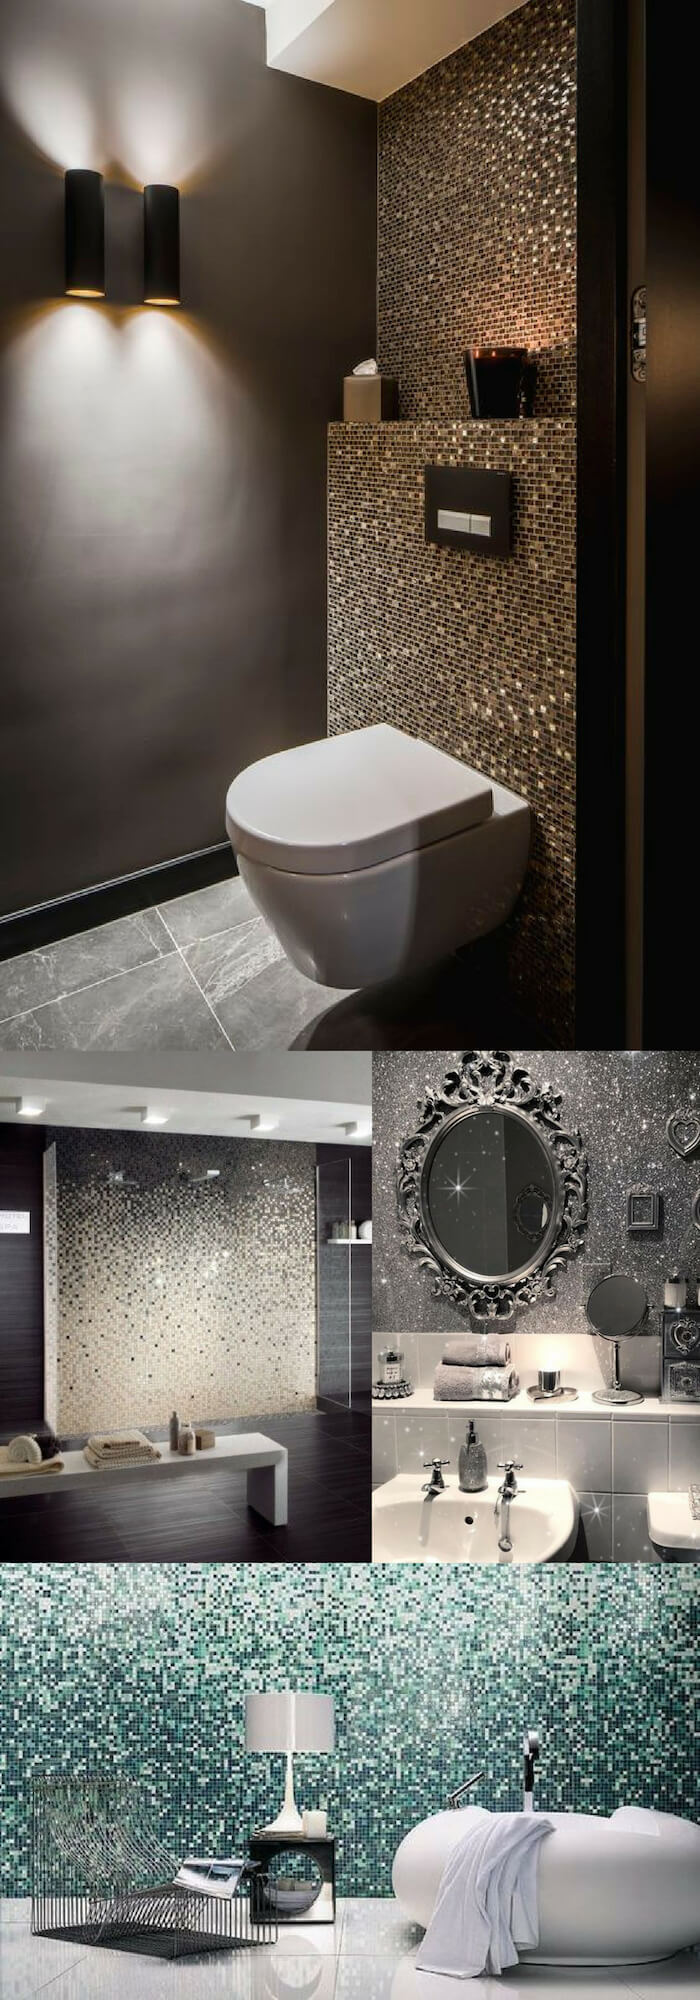 Diamond wall | Unique Wall Tile Ideas for Bathroom Design